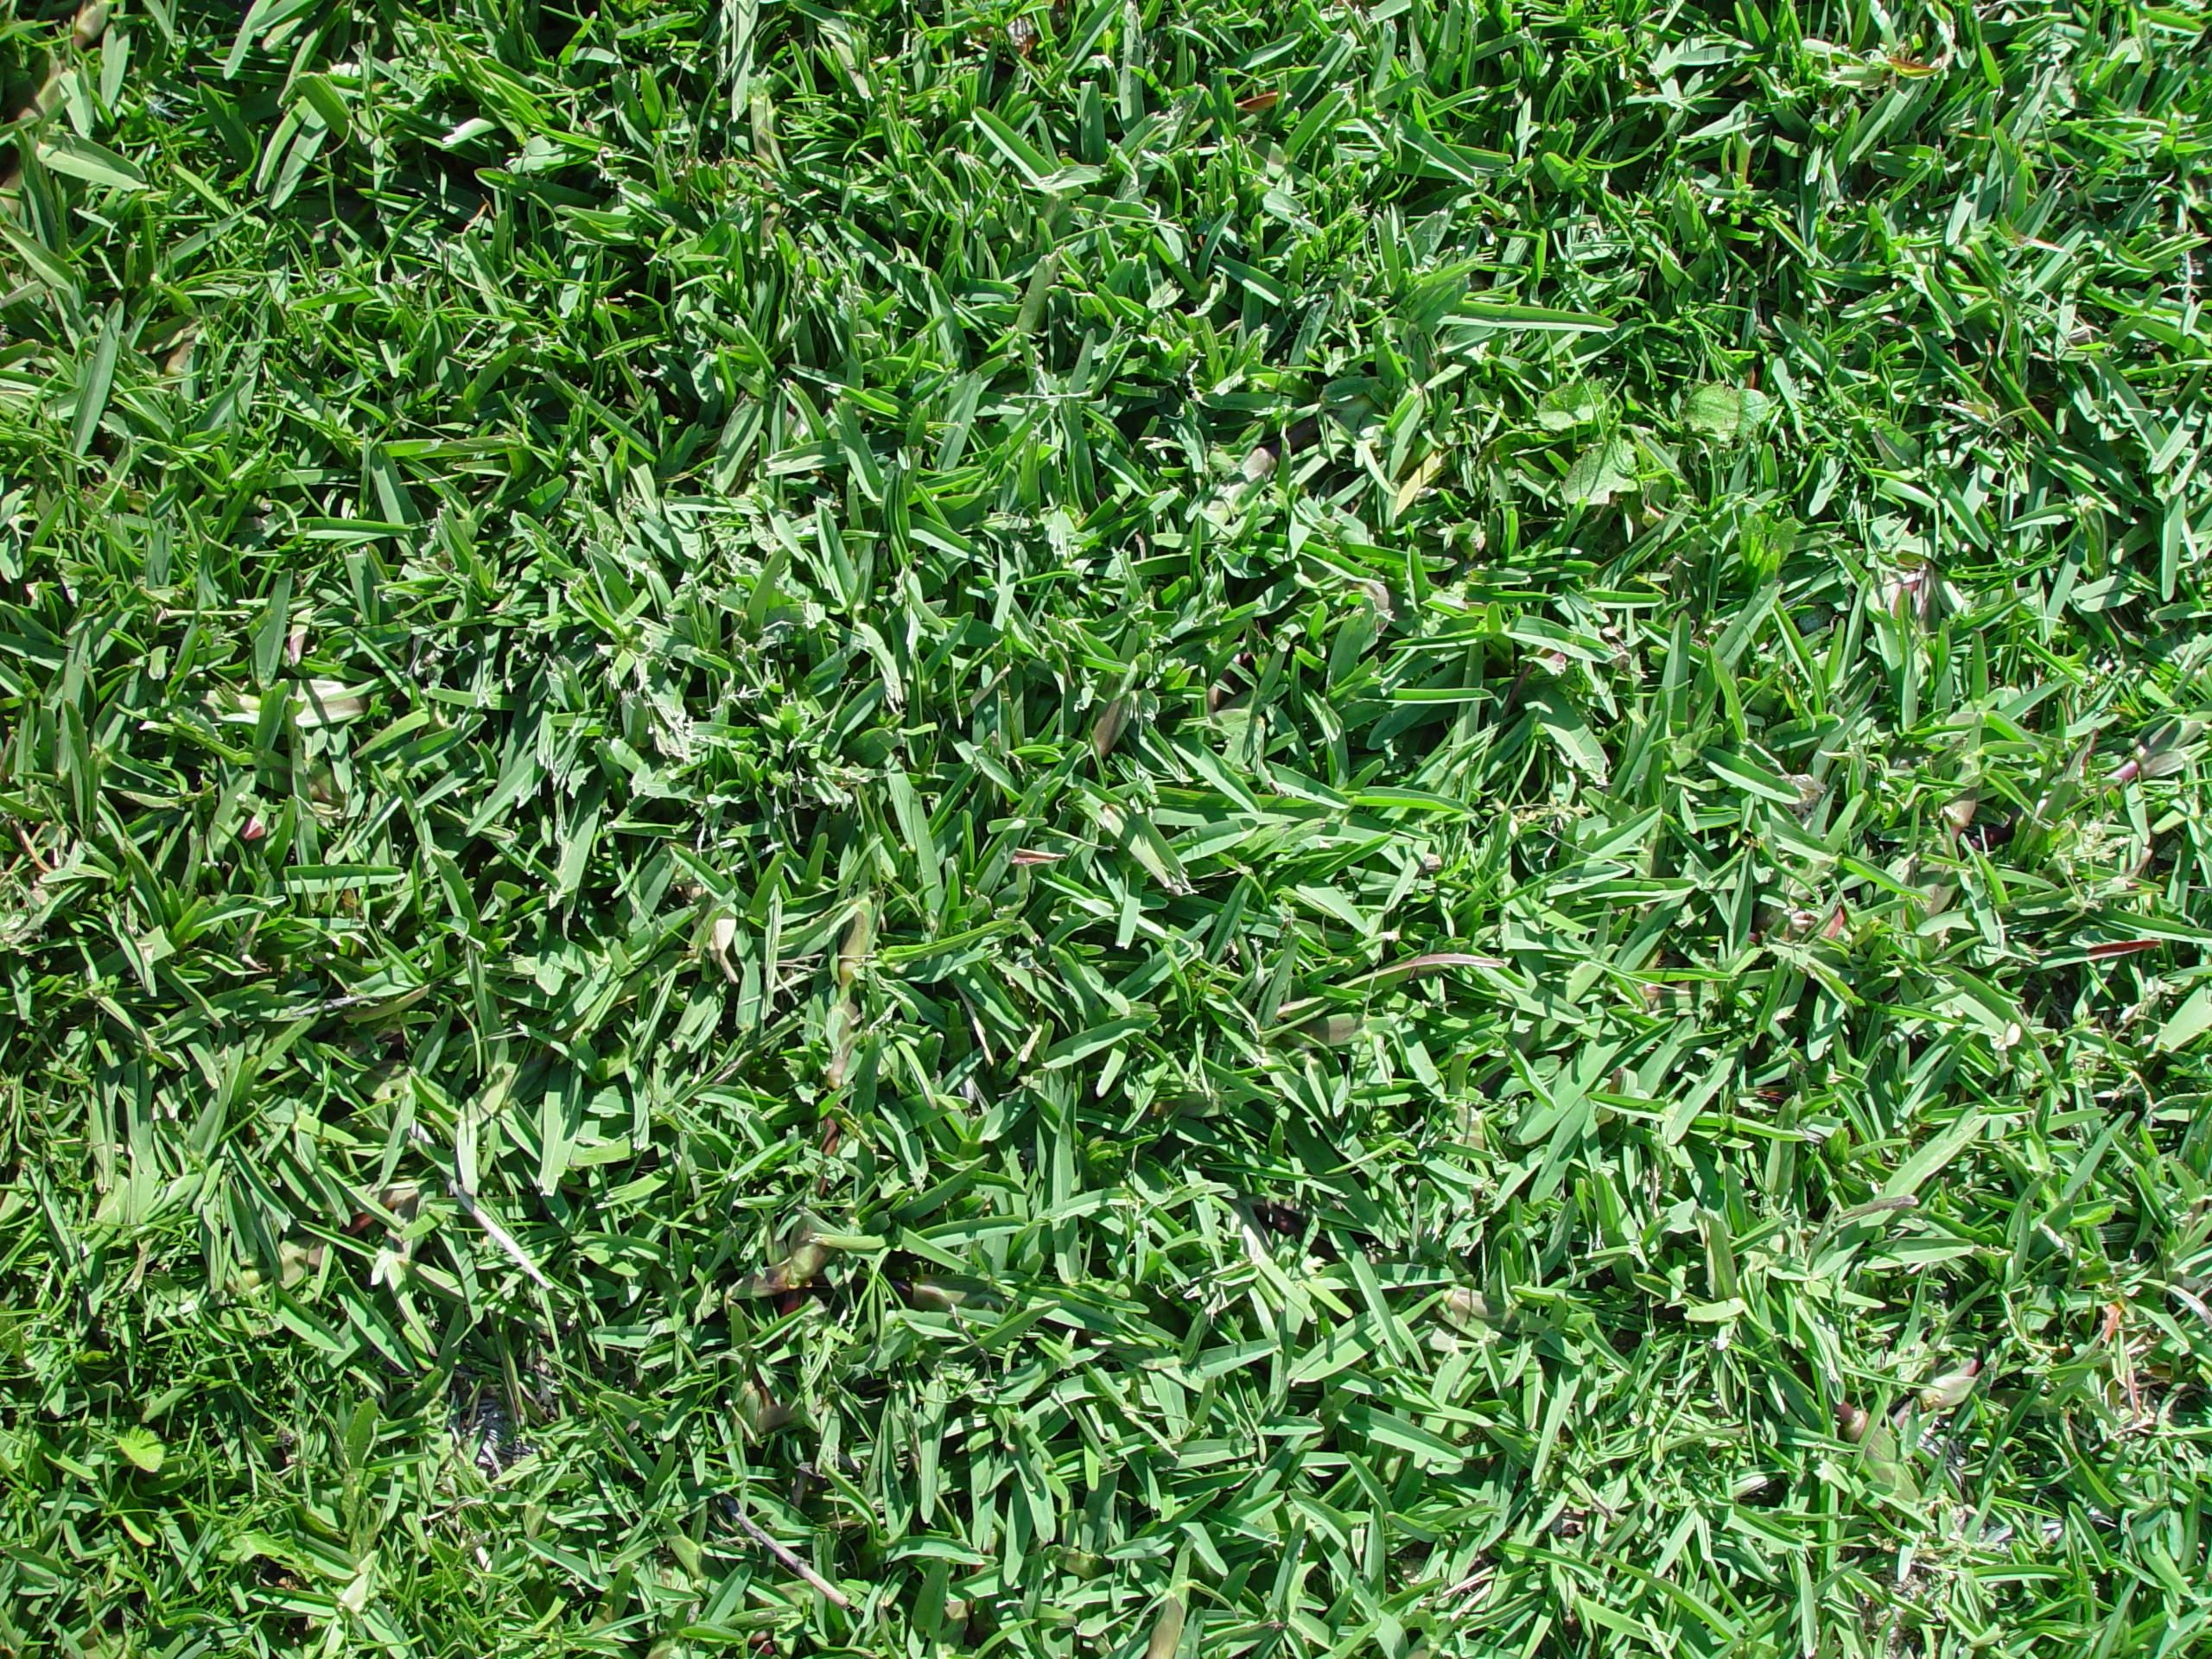 Buffalograss - What Kind of Grass Do I Have?